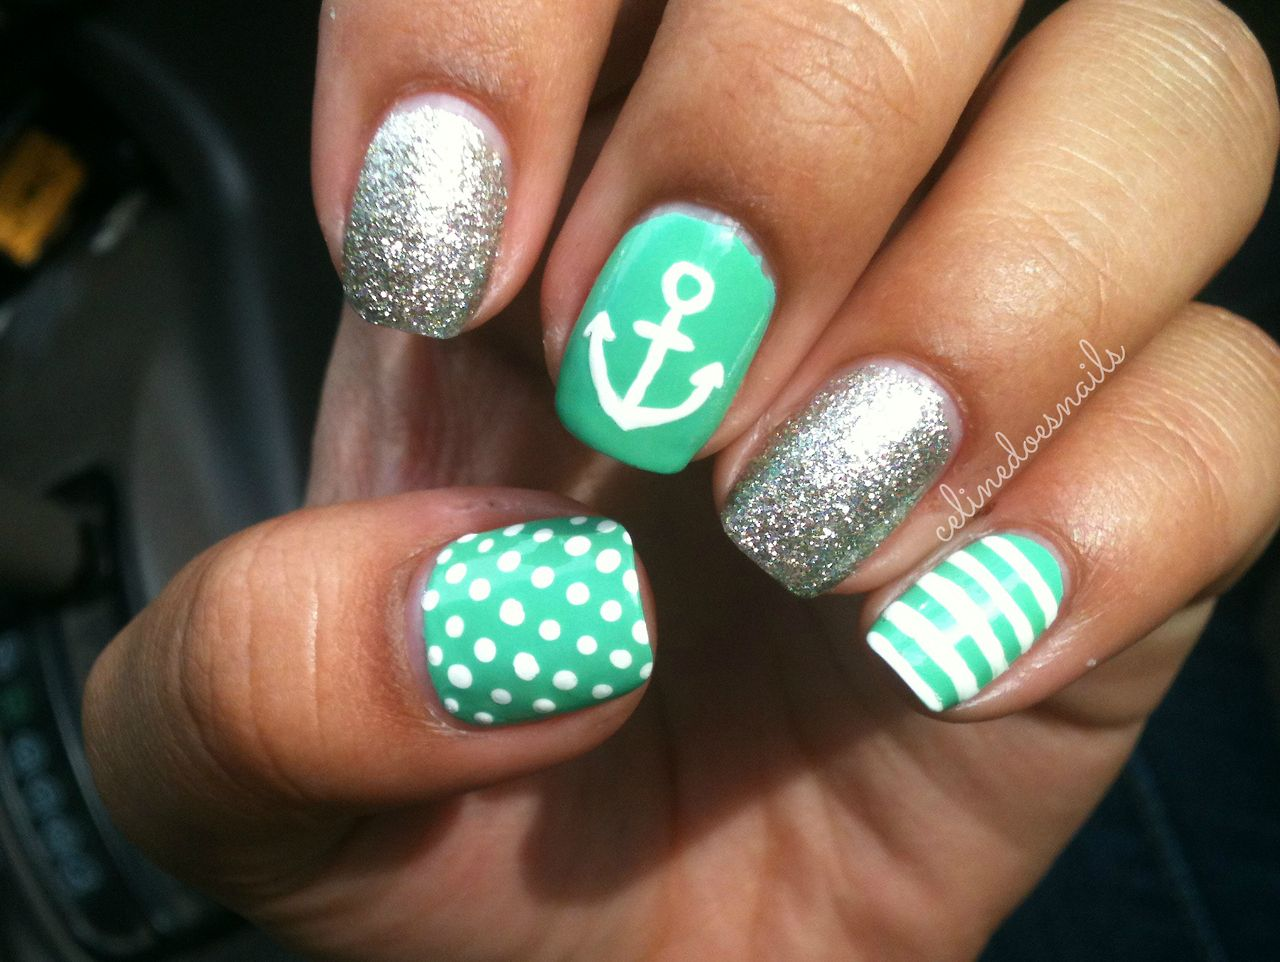 I love the thumb nail turquoise with white polka dots nails